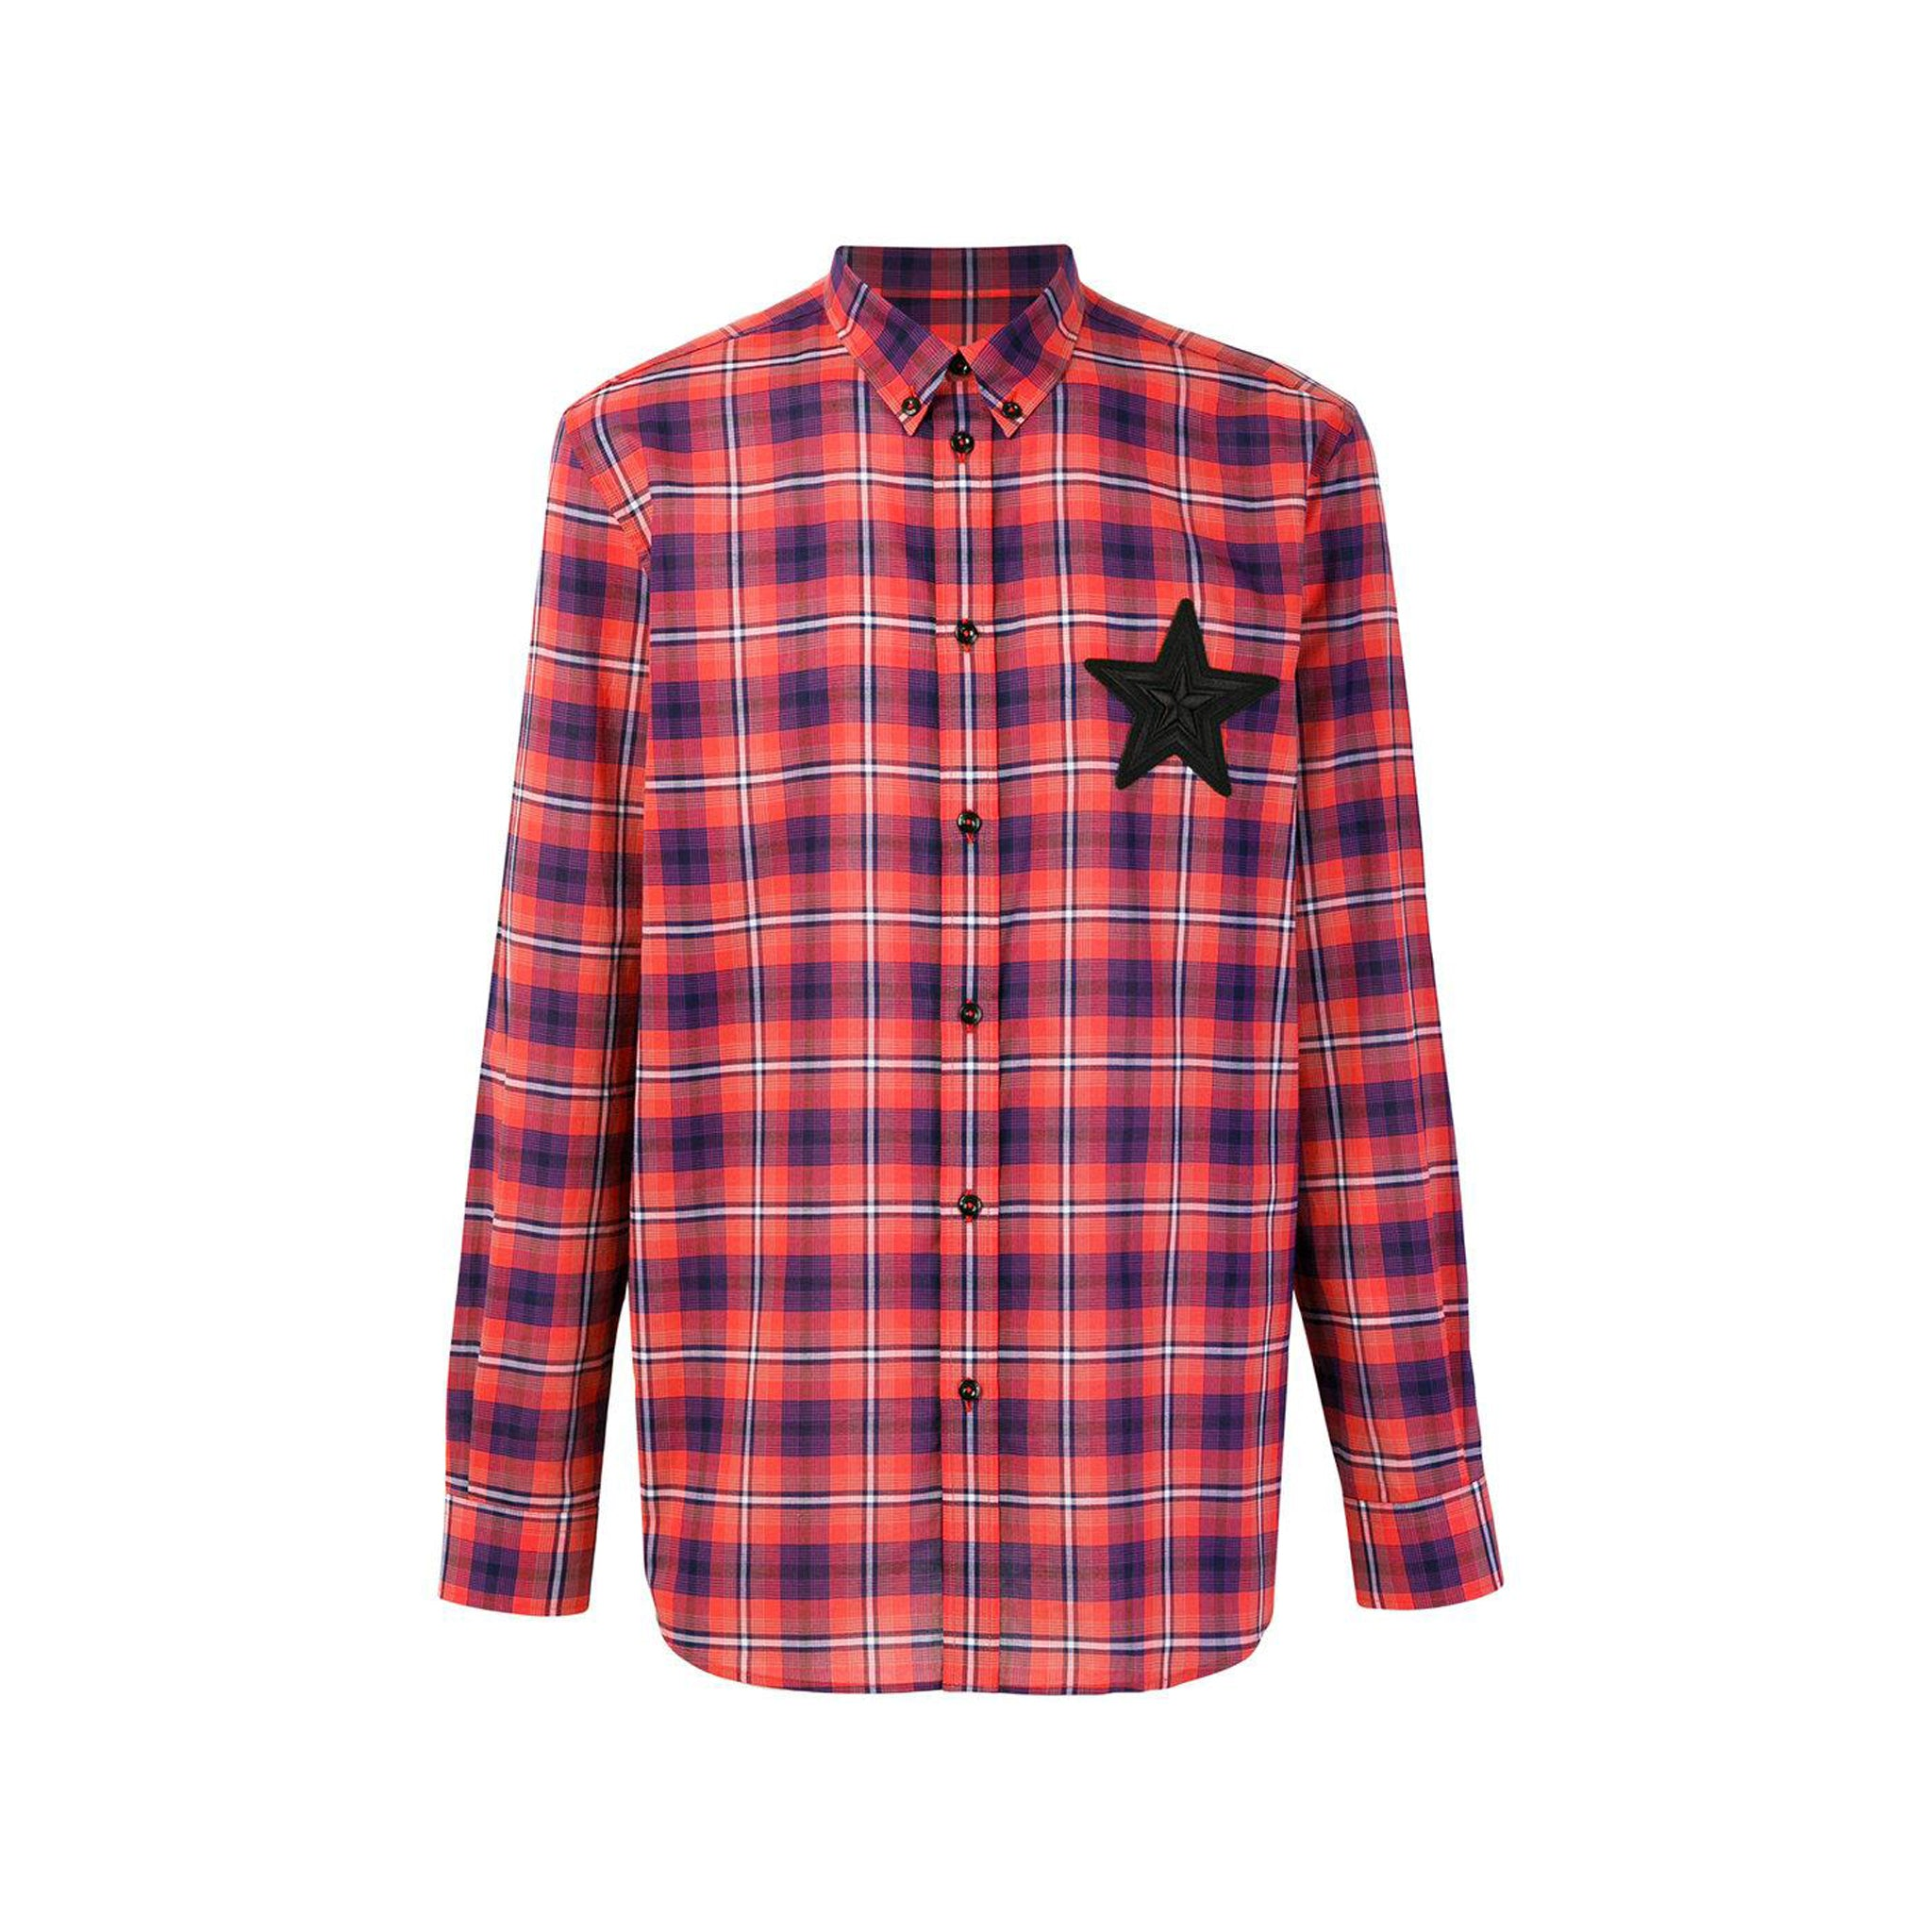 Givenchy Plaid Flannel Shirt